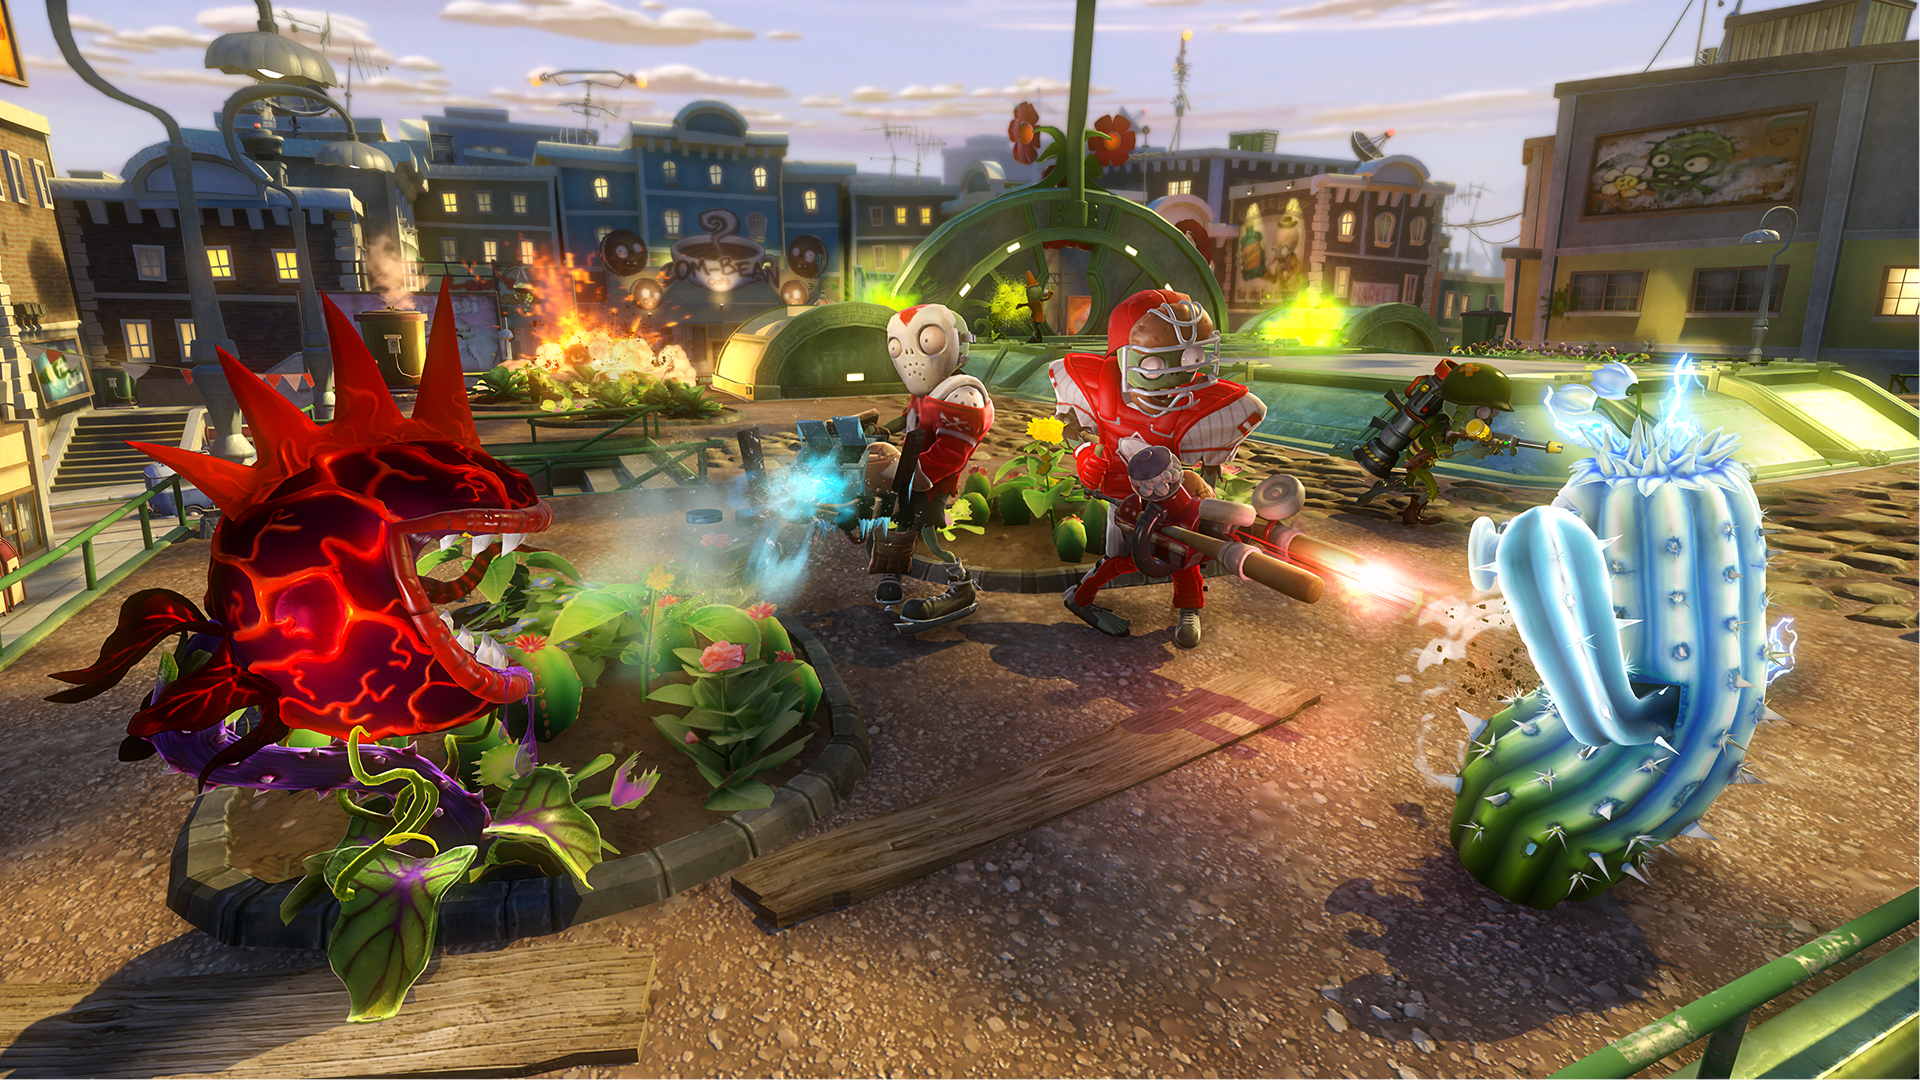 Plants vs. Zombies: Garden Warfare 2 for macOS gameplay